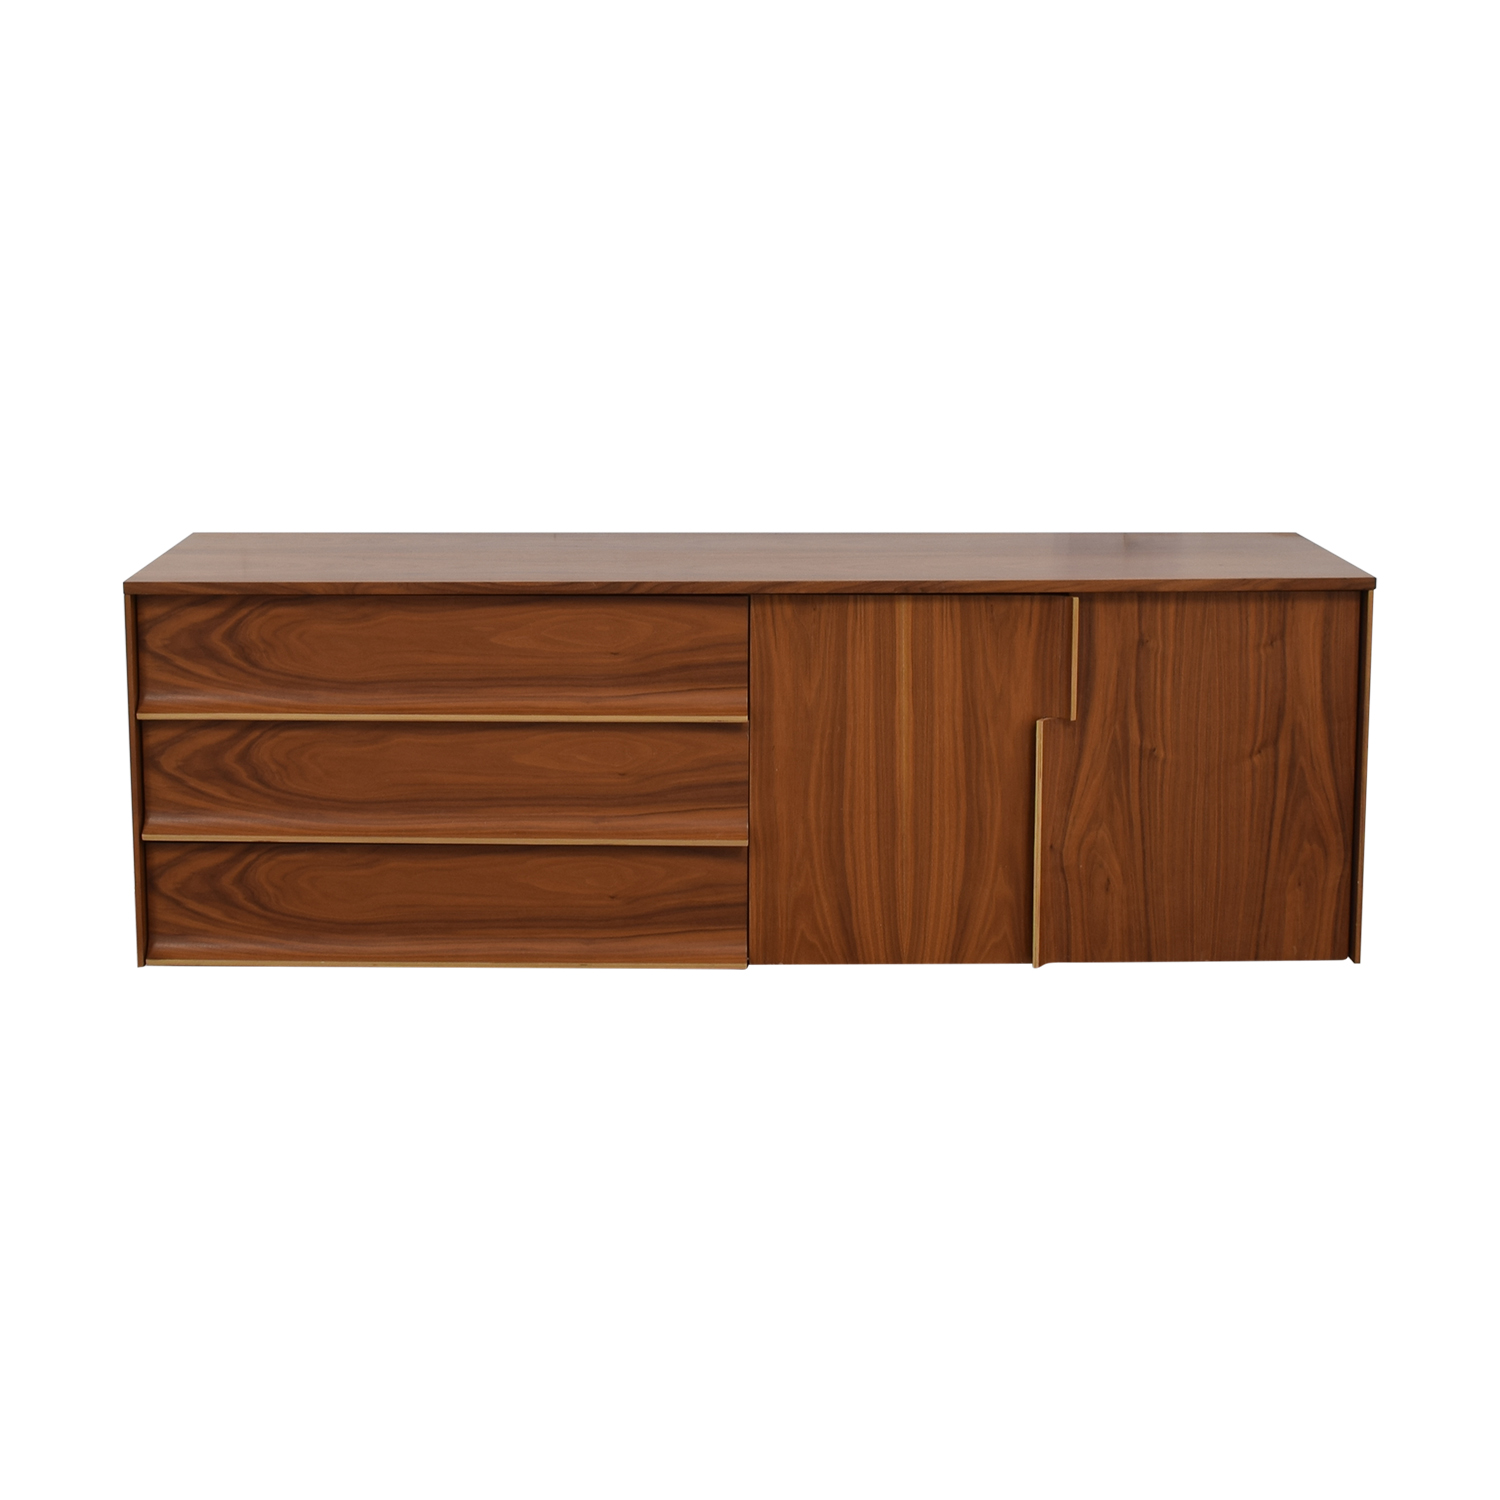 Three-Drawer Media Console second hand